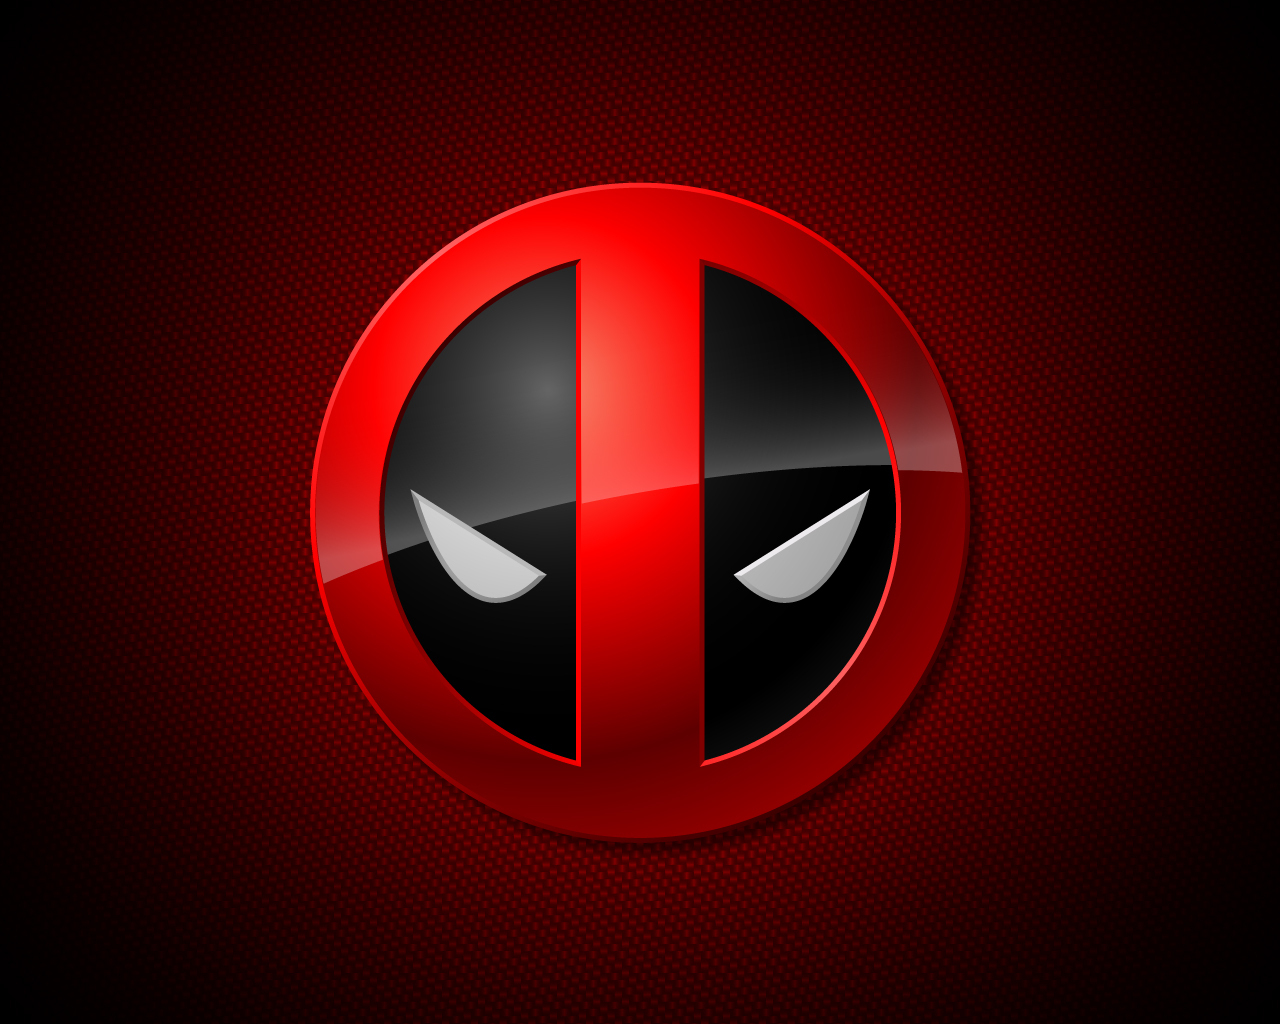 Deadpool images Deadpool Wallpaper wallpaper photos 10619272 1280x1024